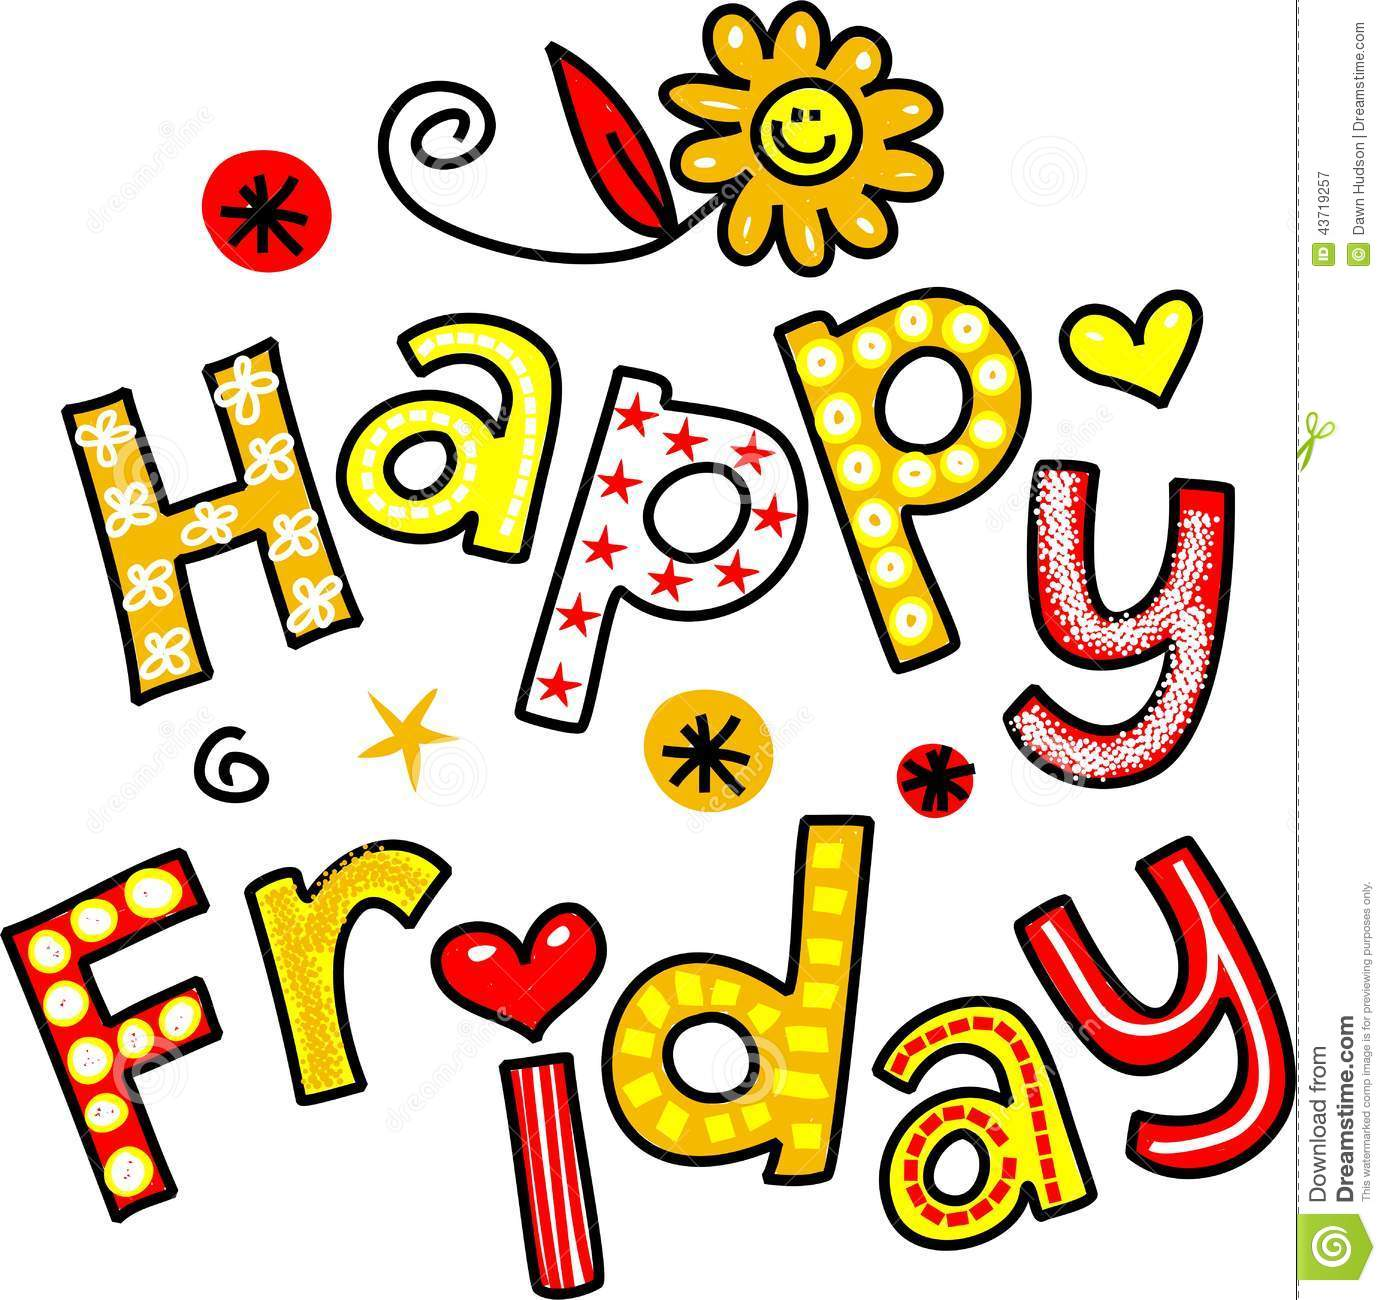 Happy Friday Animated Clipart - Clipart Kid